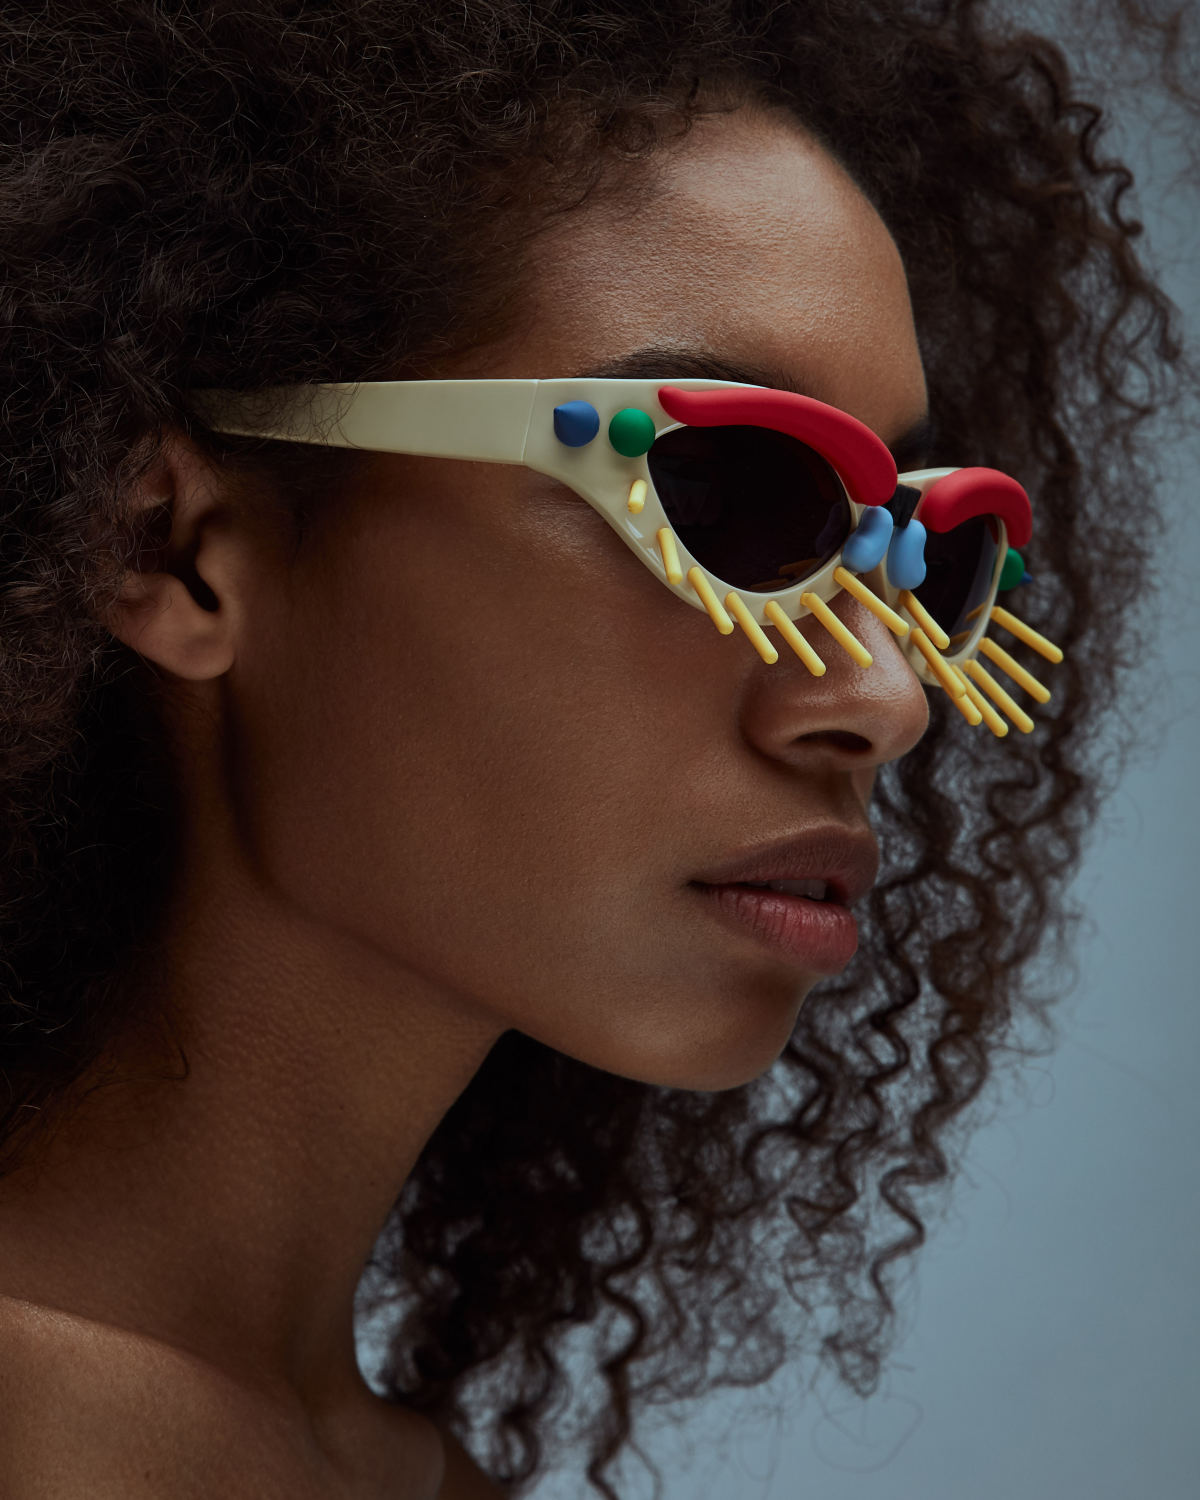 FAKBYFAK x Walter Van Beirendonck Couture sunglasses Toy Glasses Model 1. Skin tone with coloured pins Code: 09/01/04